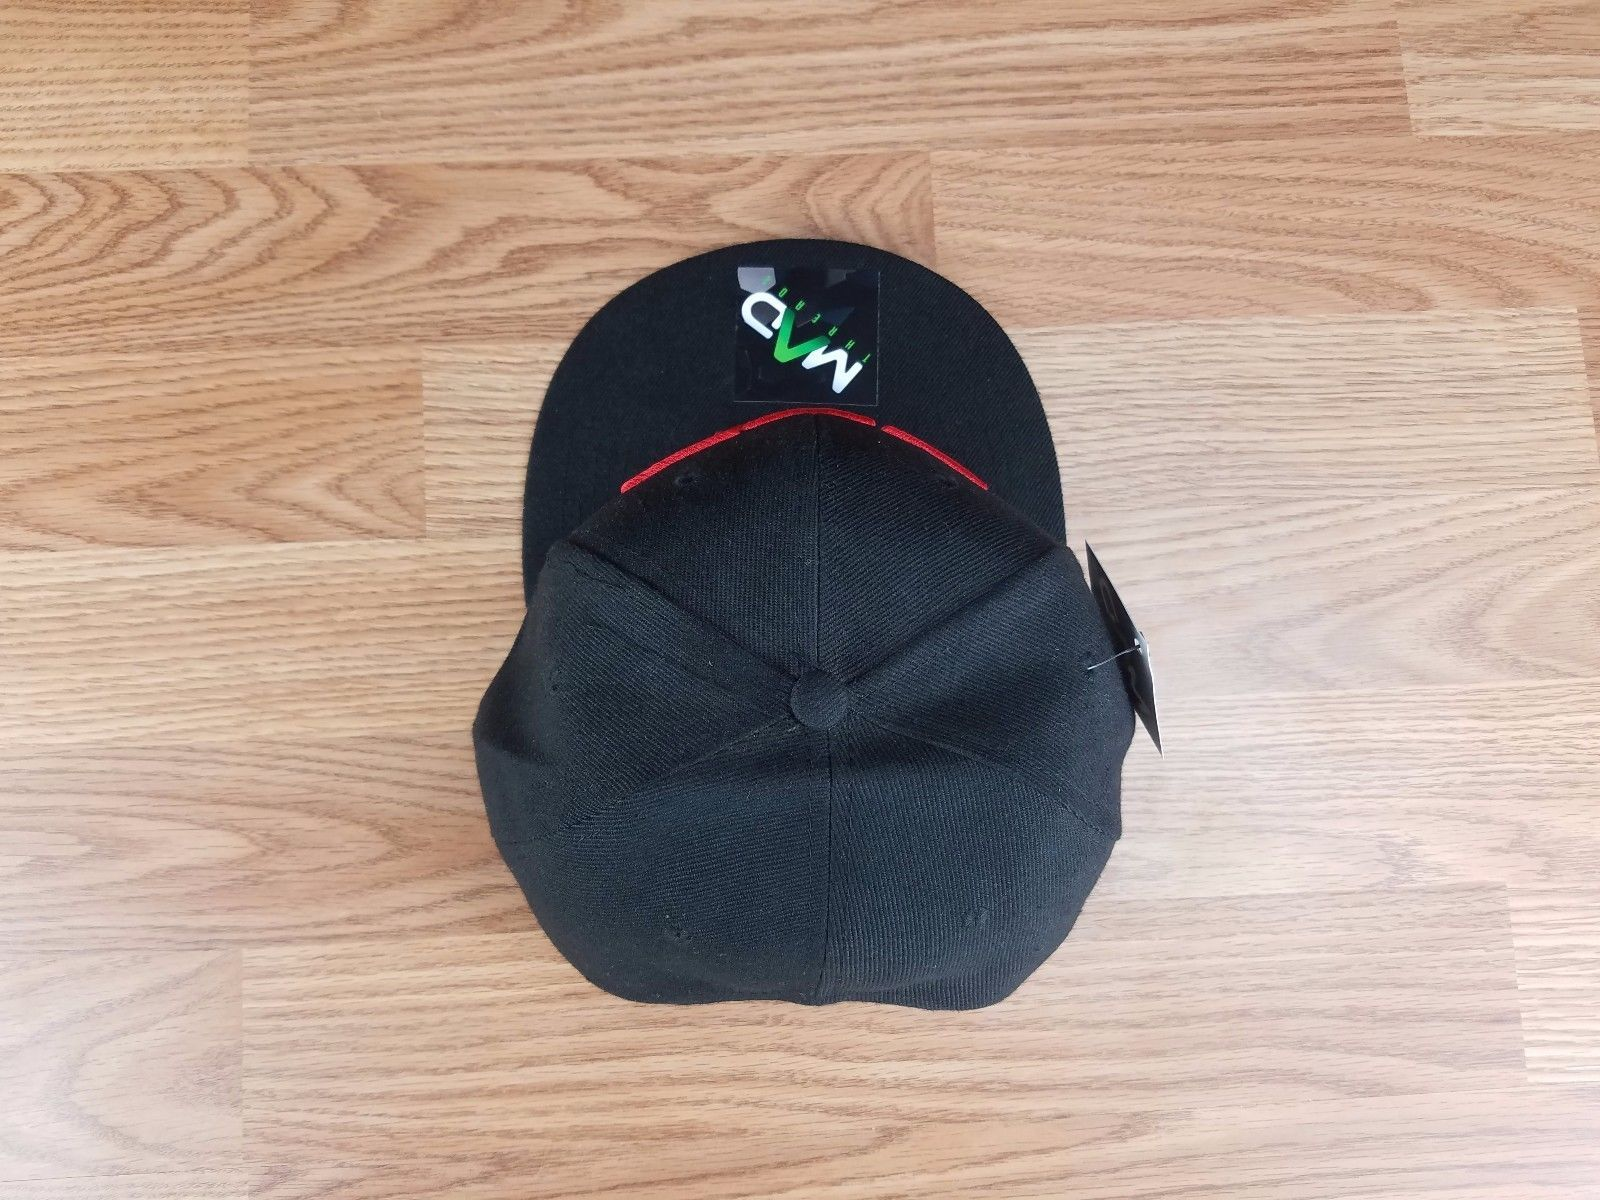 TOYOTA hat, SR5 hat, Tacoma, embroidered hat, racing, Otto, Snapback, cap, hat